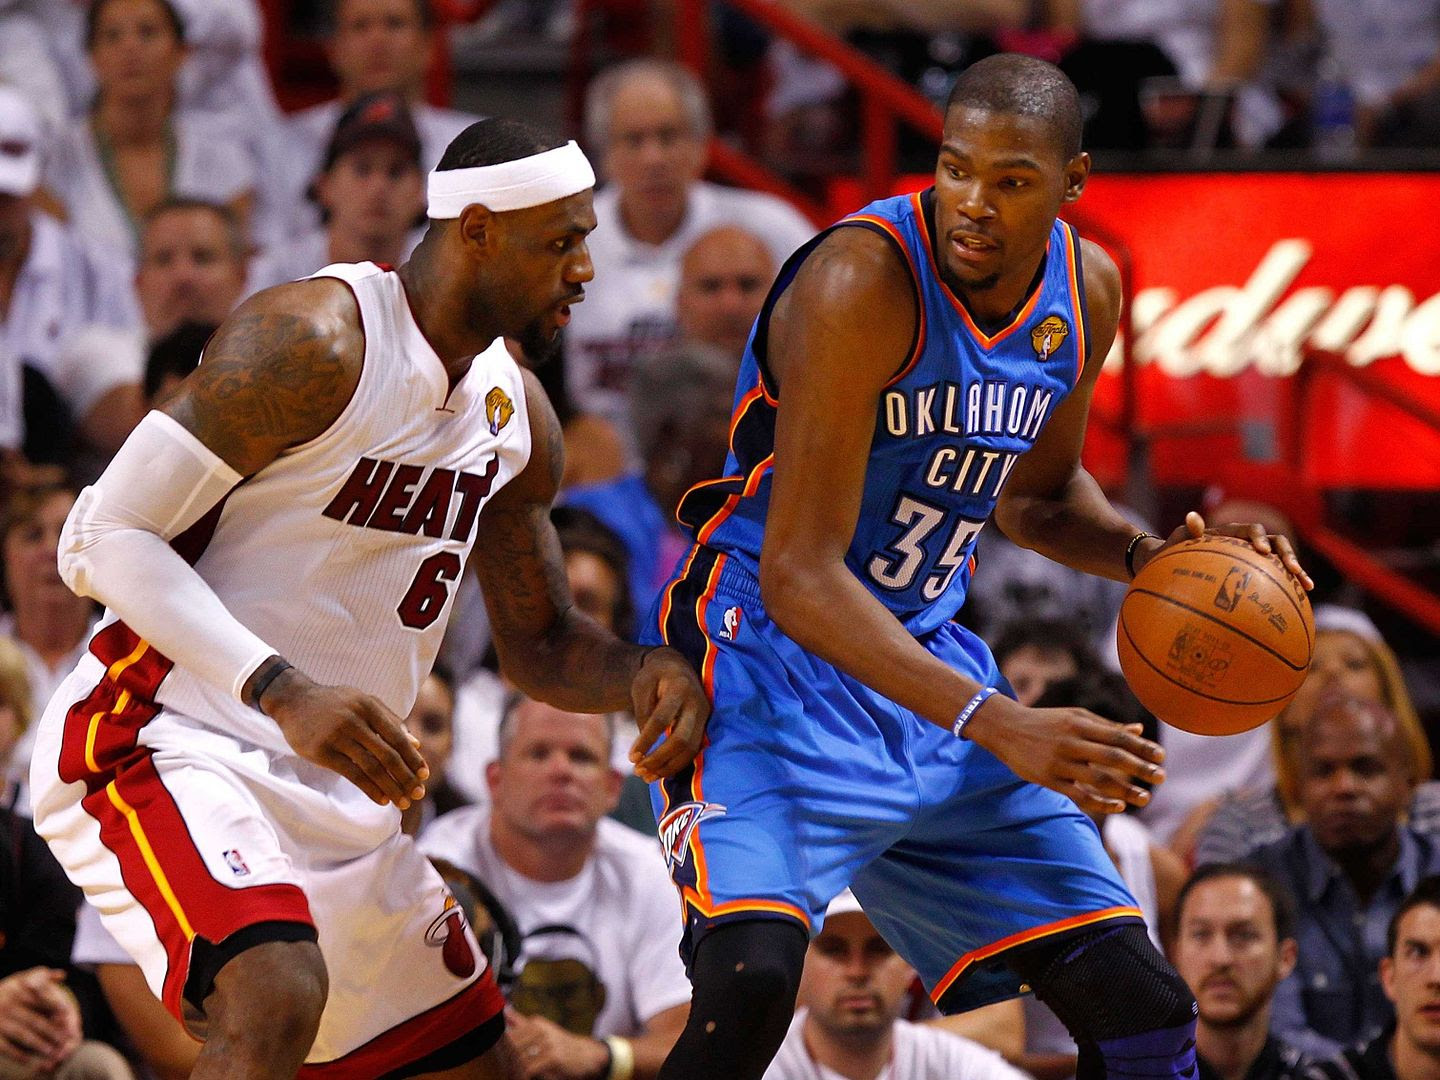 Kevin Durant & LeBron James photo image.jpg